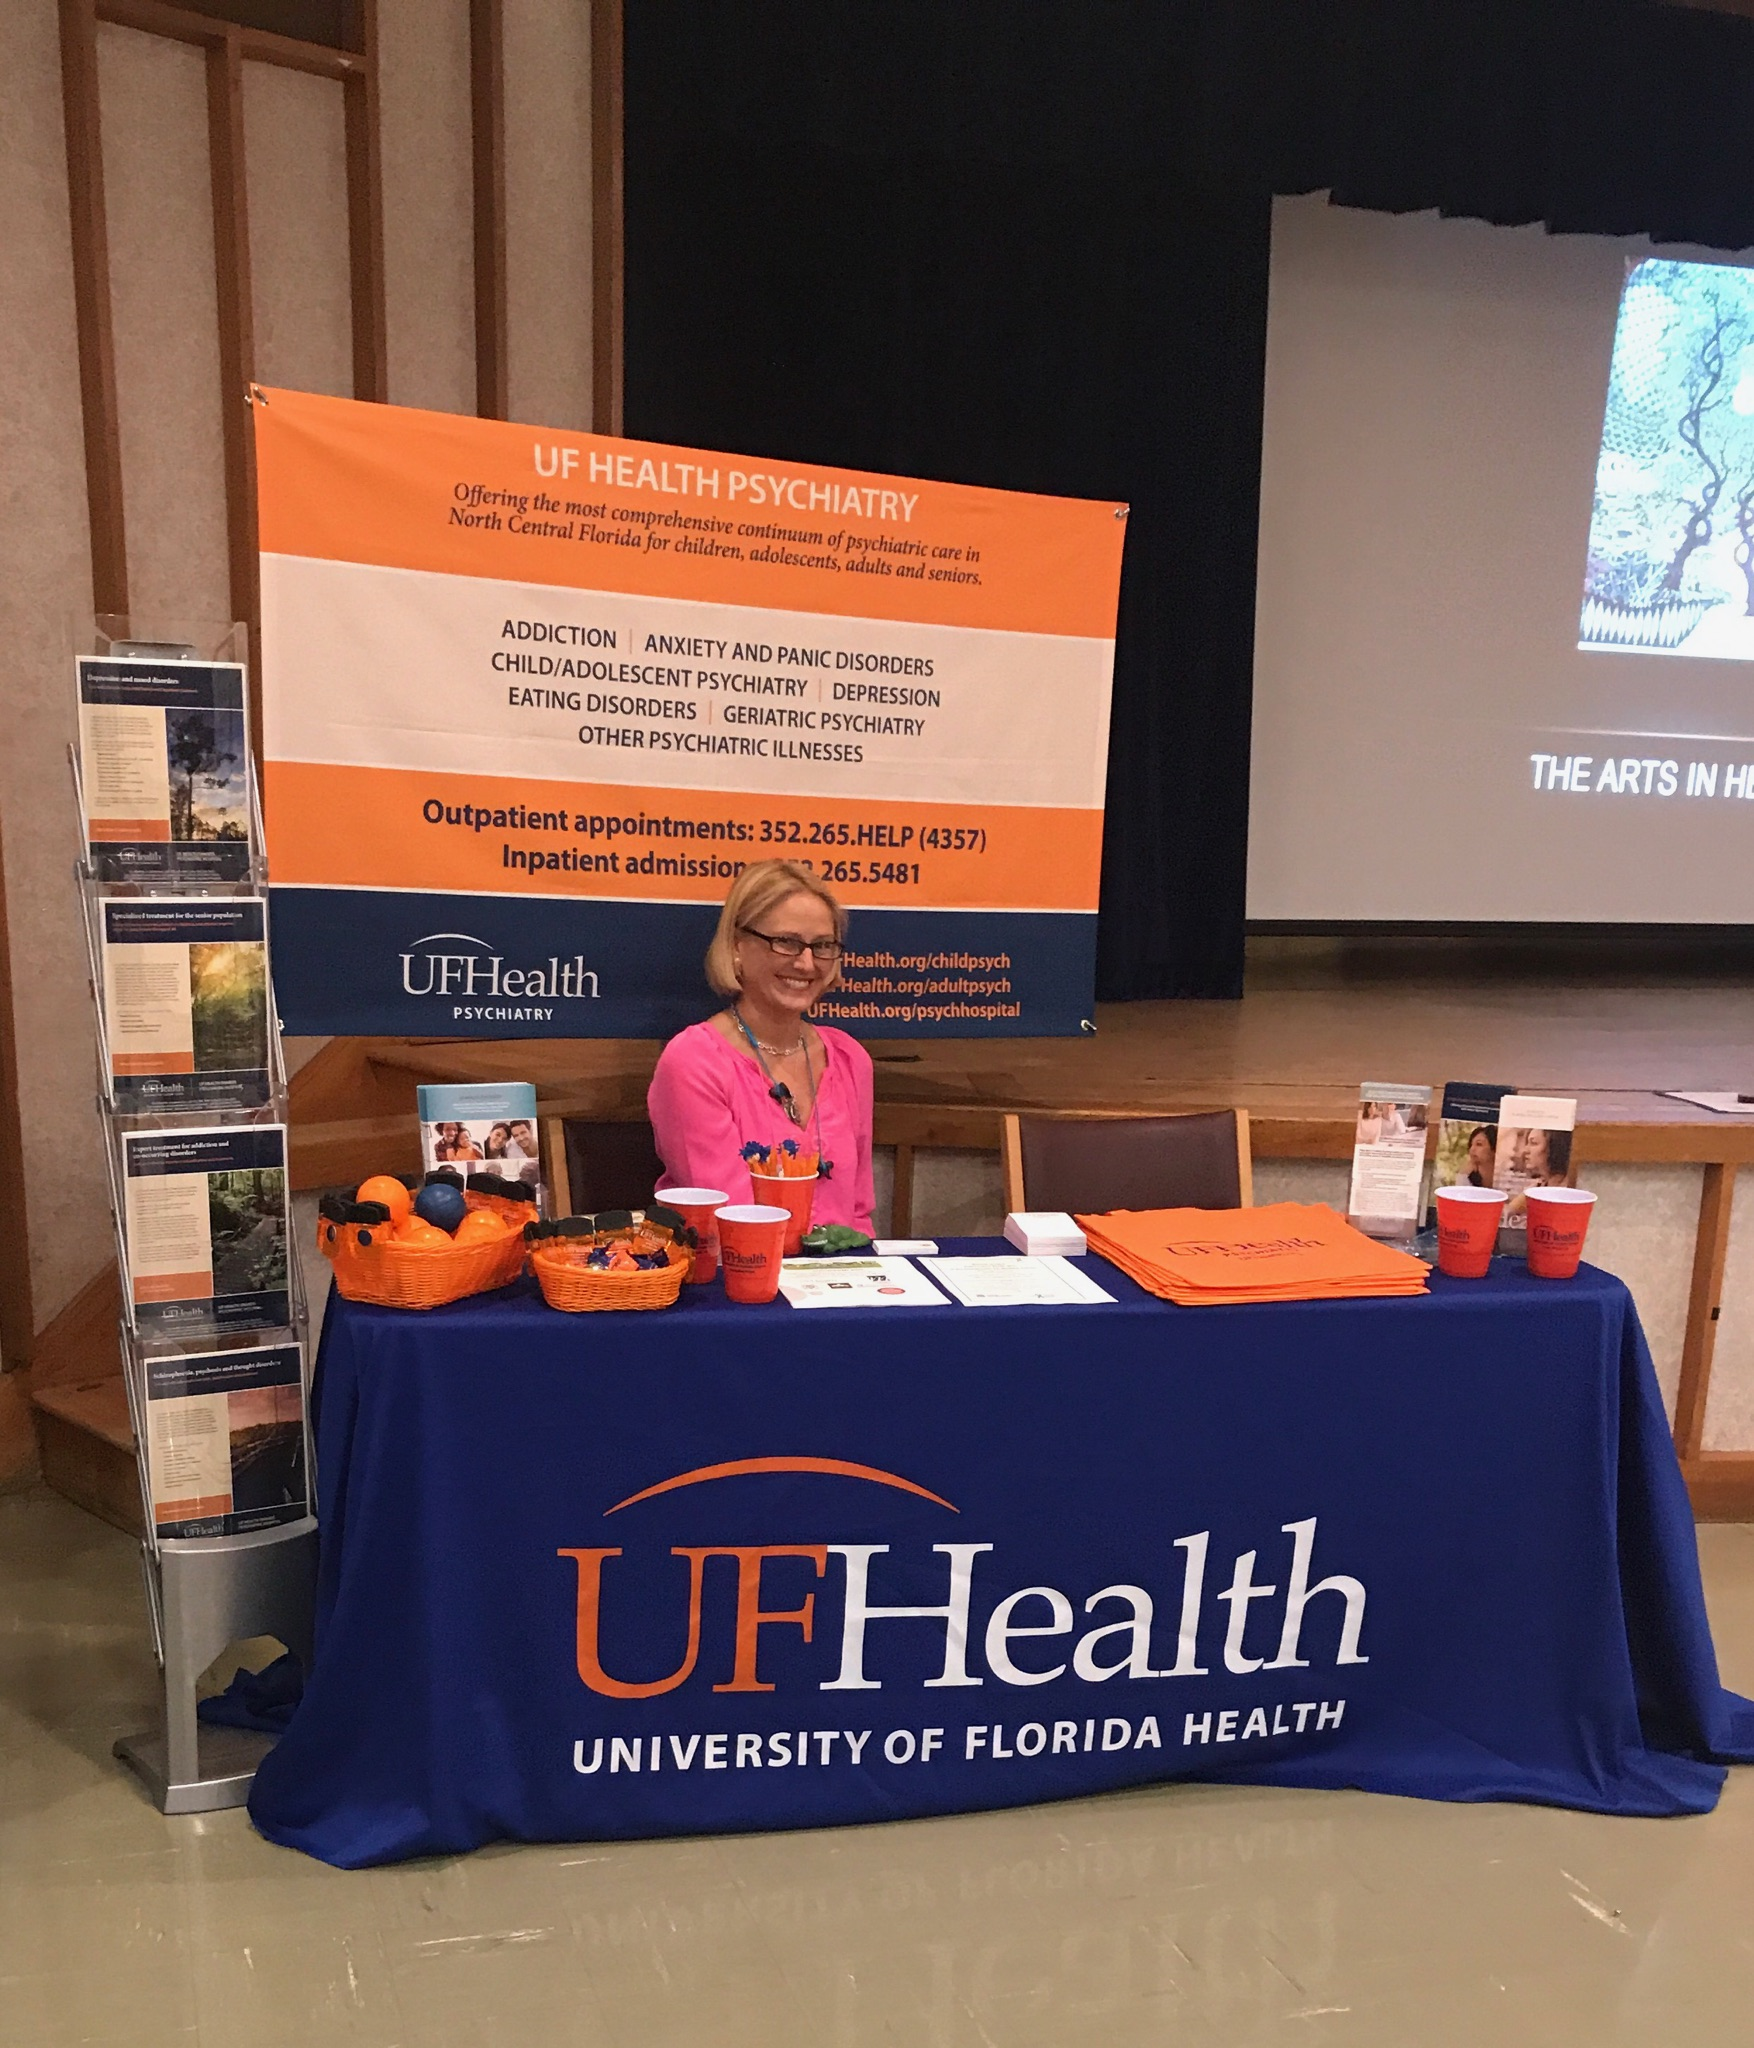 UF Health booth at VA CME event